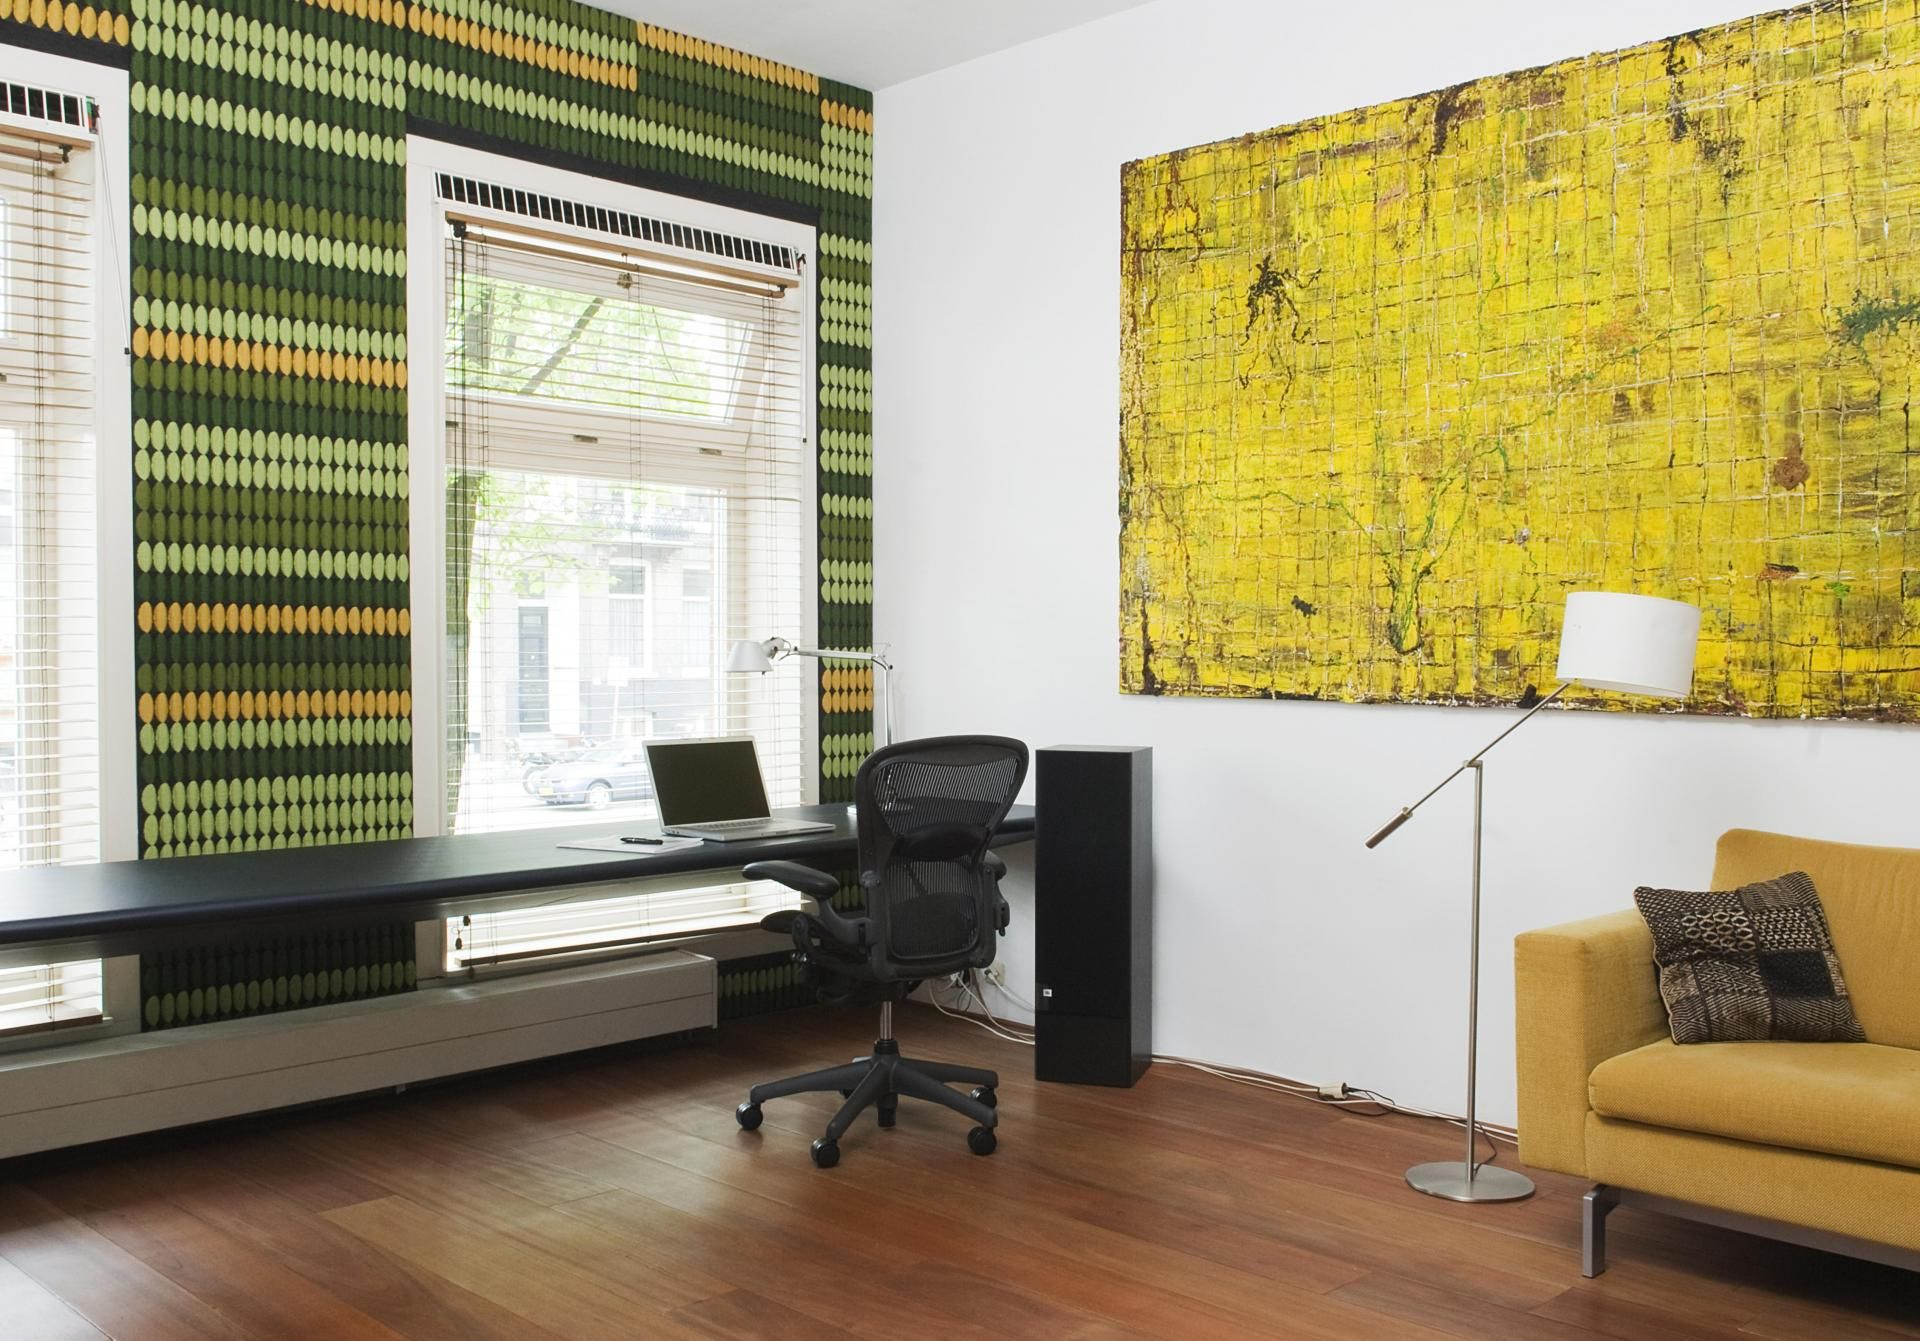 Pin by Realign Space on HOME OFFICE DESIGNS Pinterest